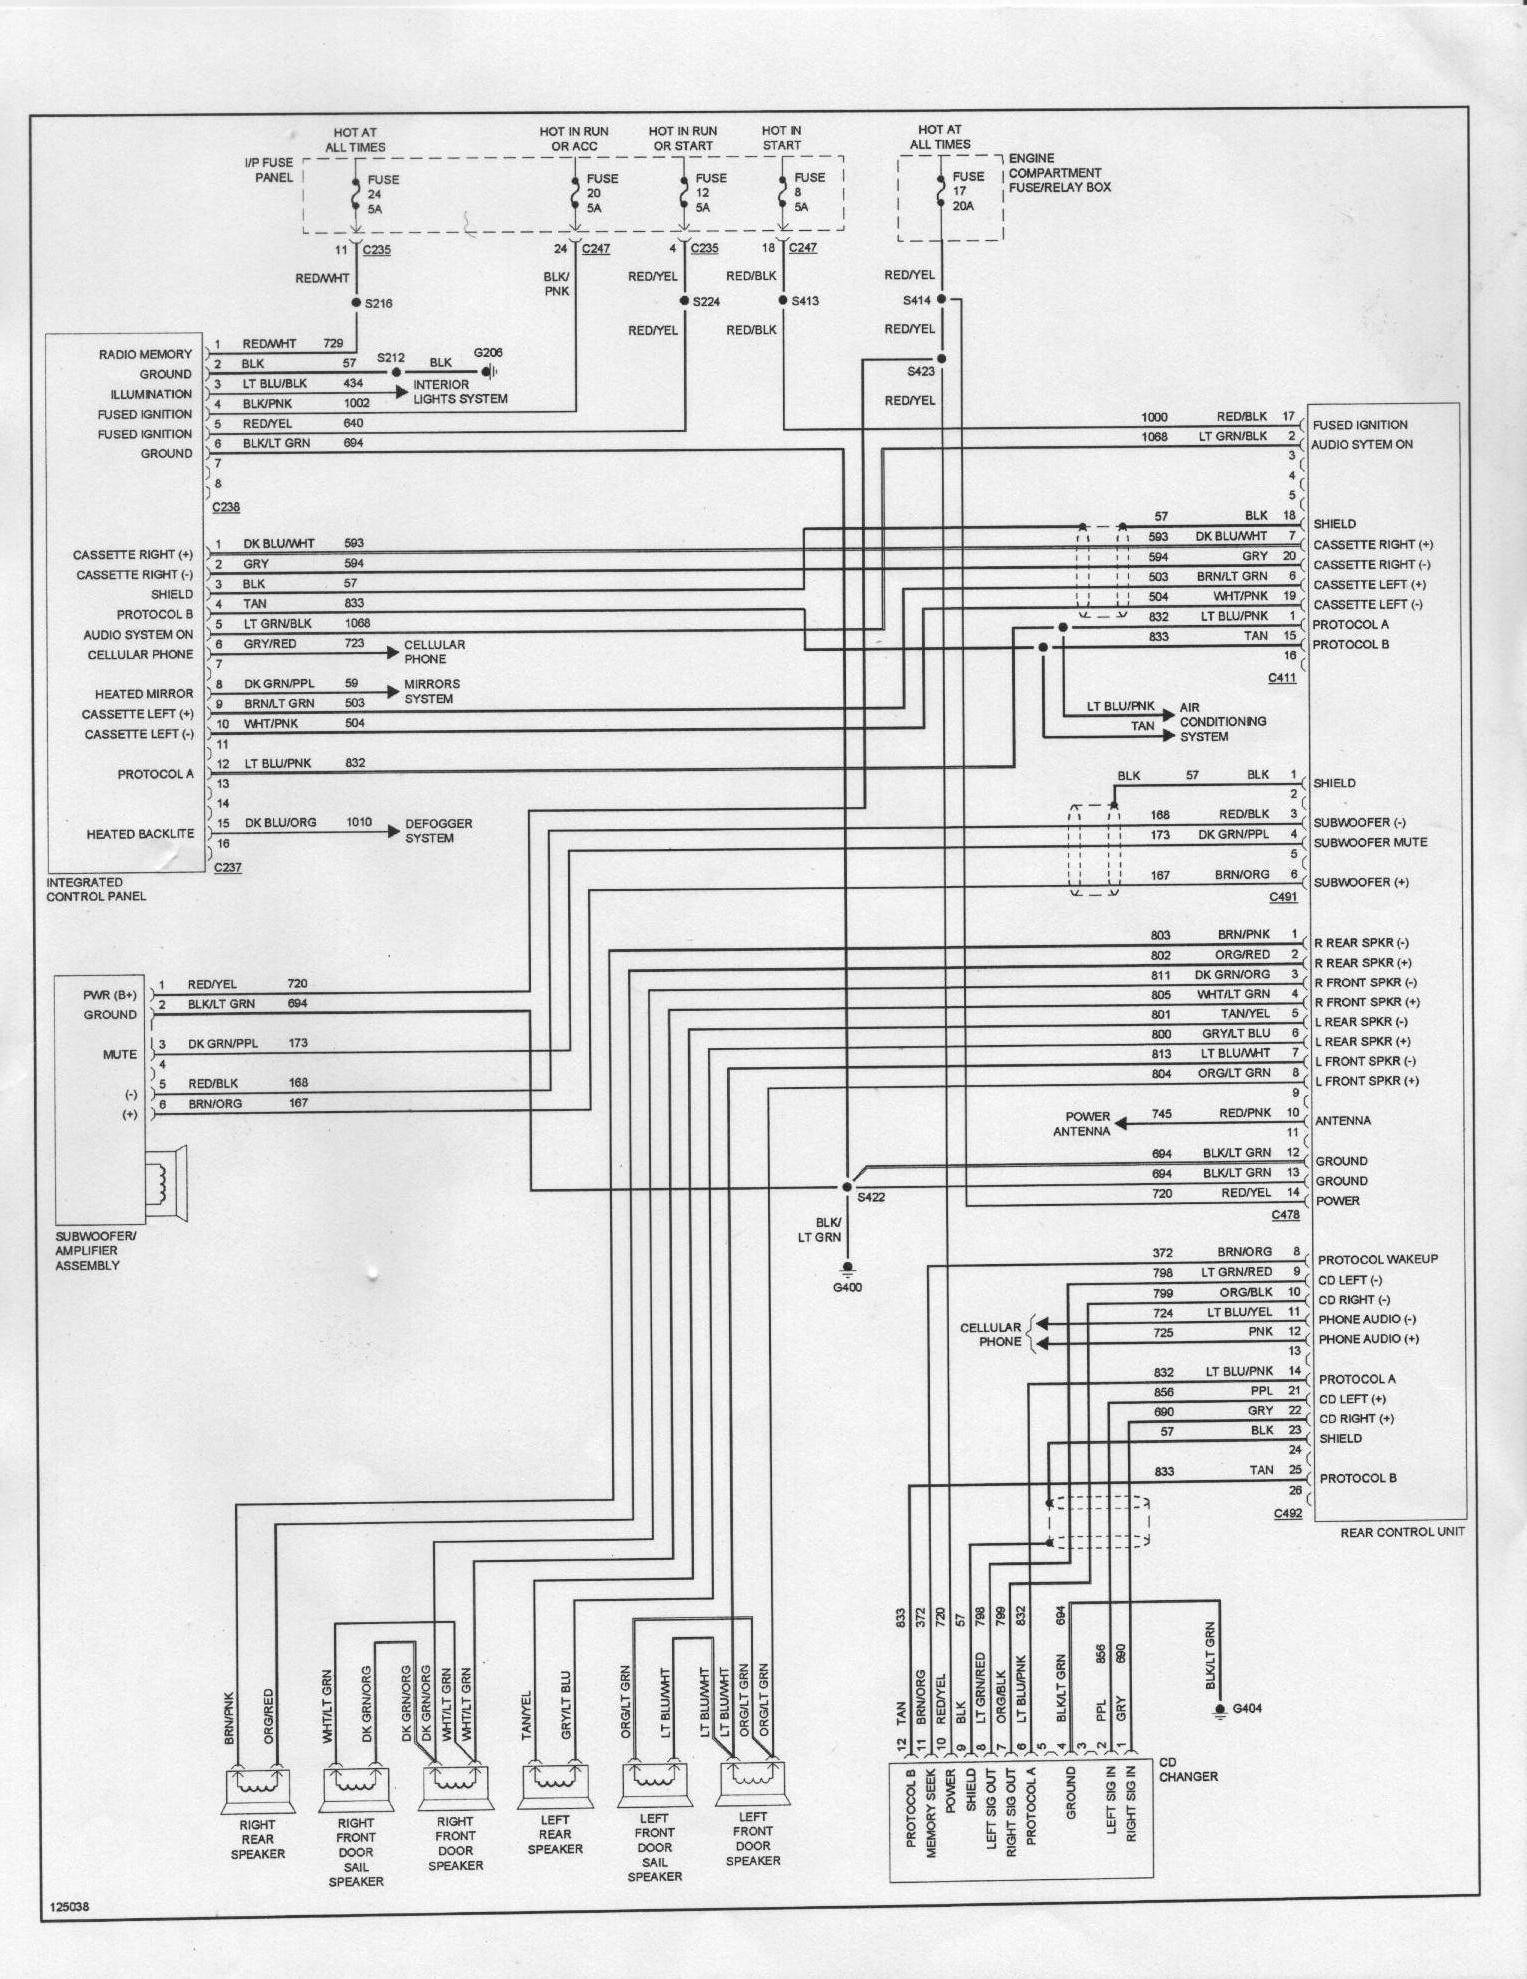 46509d1178551791 scosche orange wire _______ diagram96 scosche gm wiring diagram scosche wiring diagrams instruction Scosche Wiring Harness Diagrams at gsmx.co